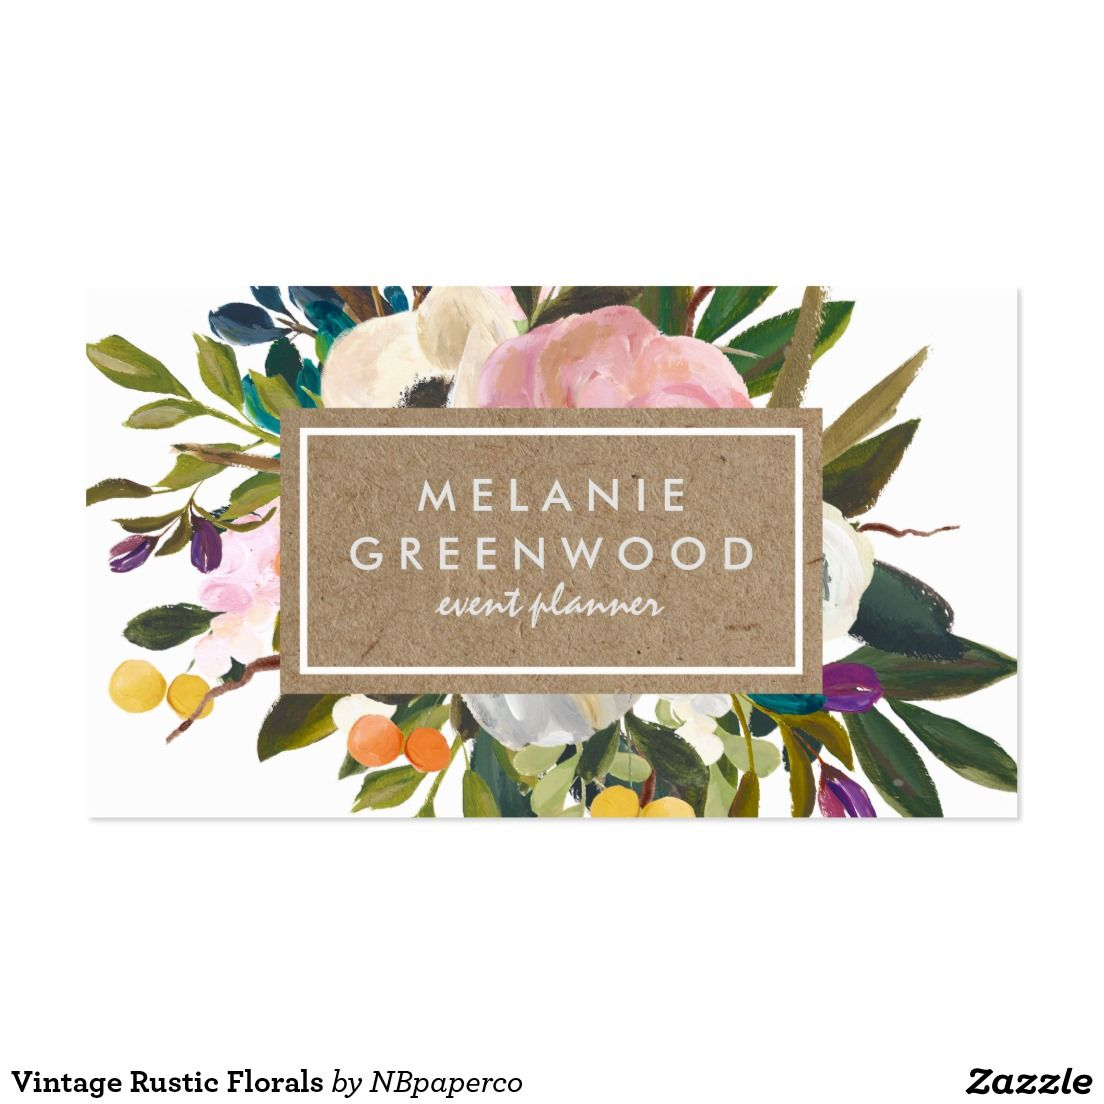 Grow your business with these Vintage Rustic Florals Business